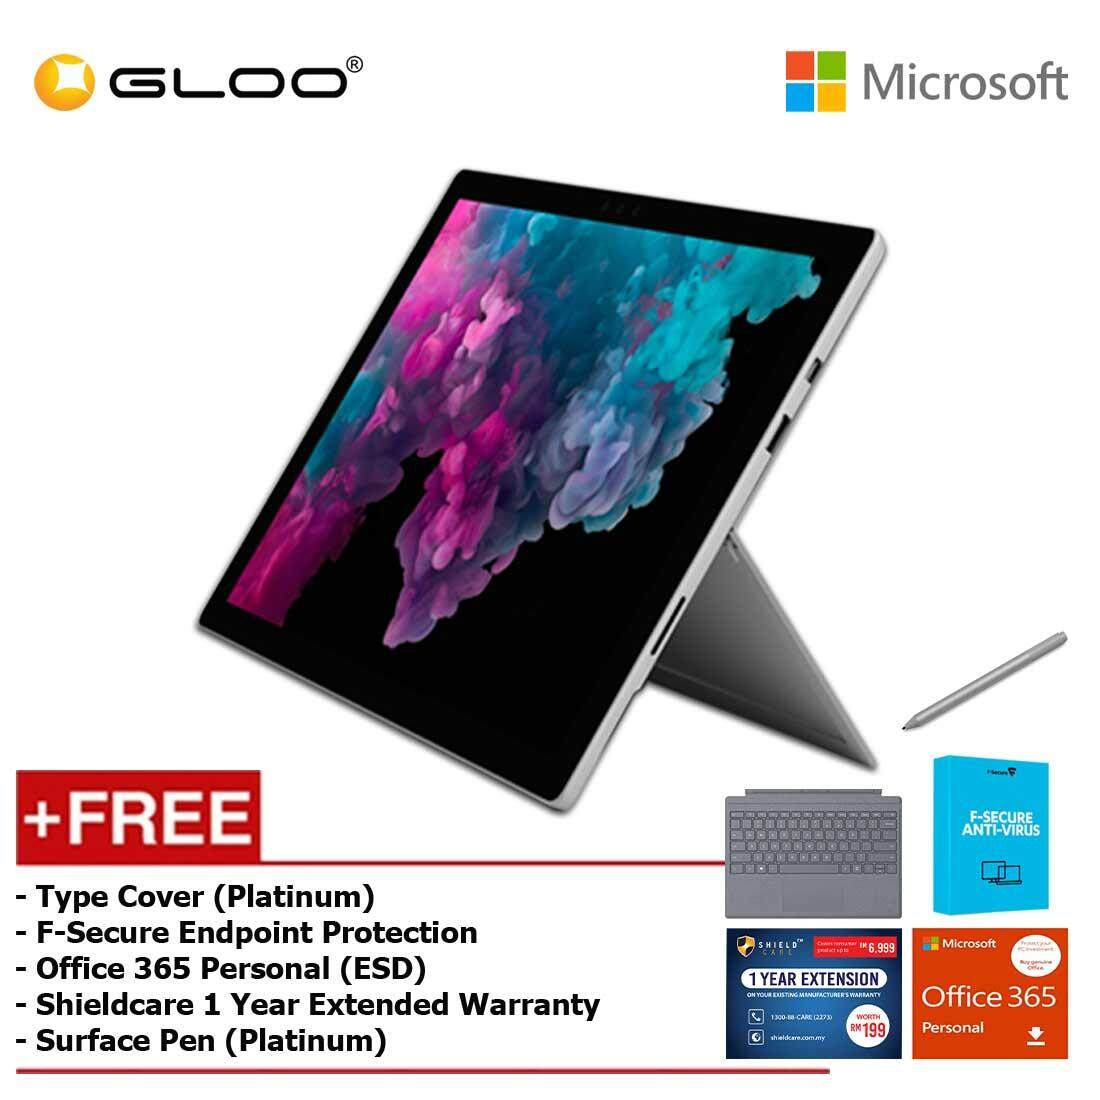 Microsoft Surface Pro 6 Core i7/8GB RAM - 256GB + Type Cover Platinum + Office 365 Personal (ESD) + F-Secure Endpoint Protection + Shieldcare 1 Year Extended Warranty + Surface Pen Platinum Malaysia